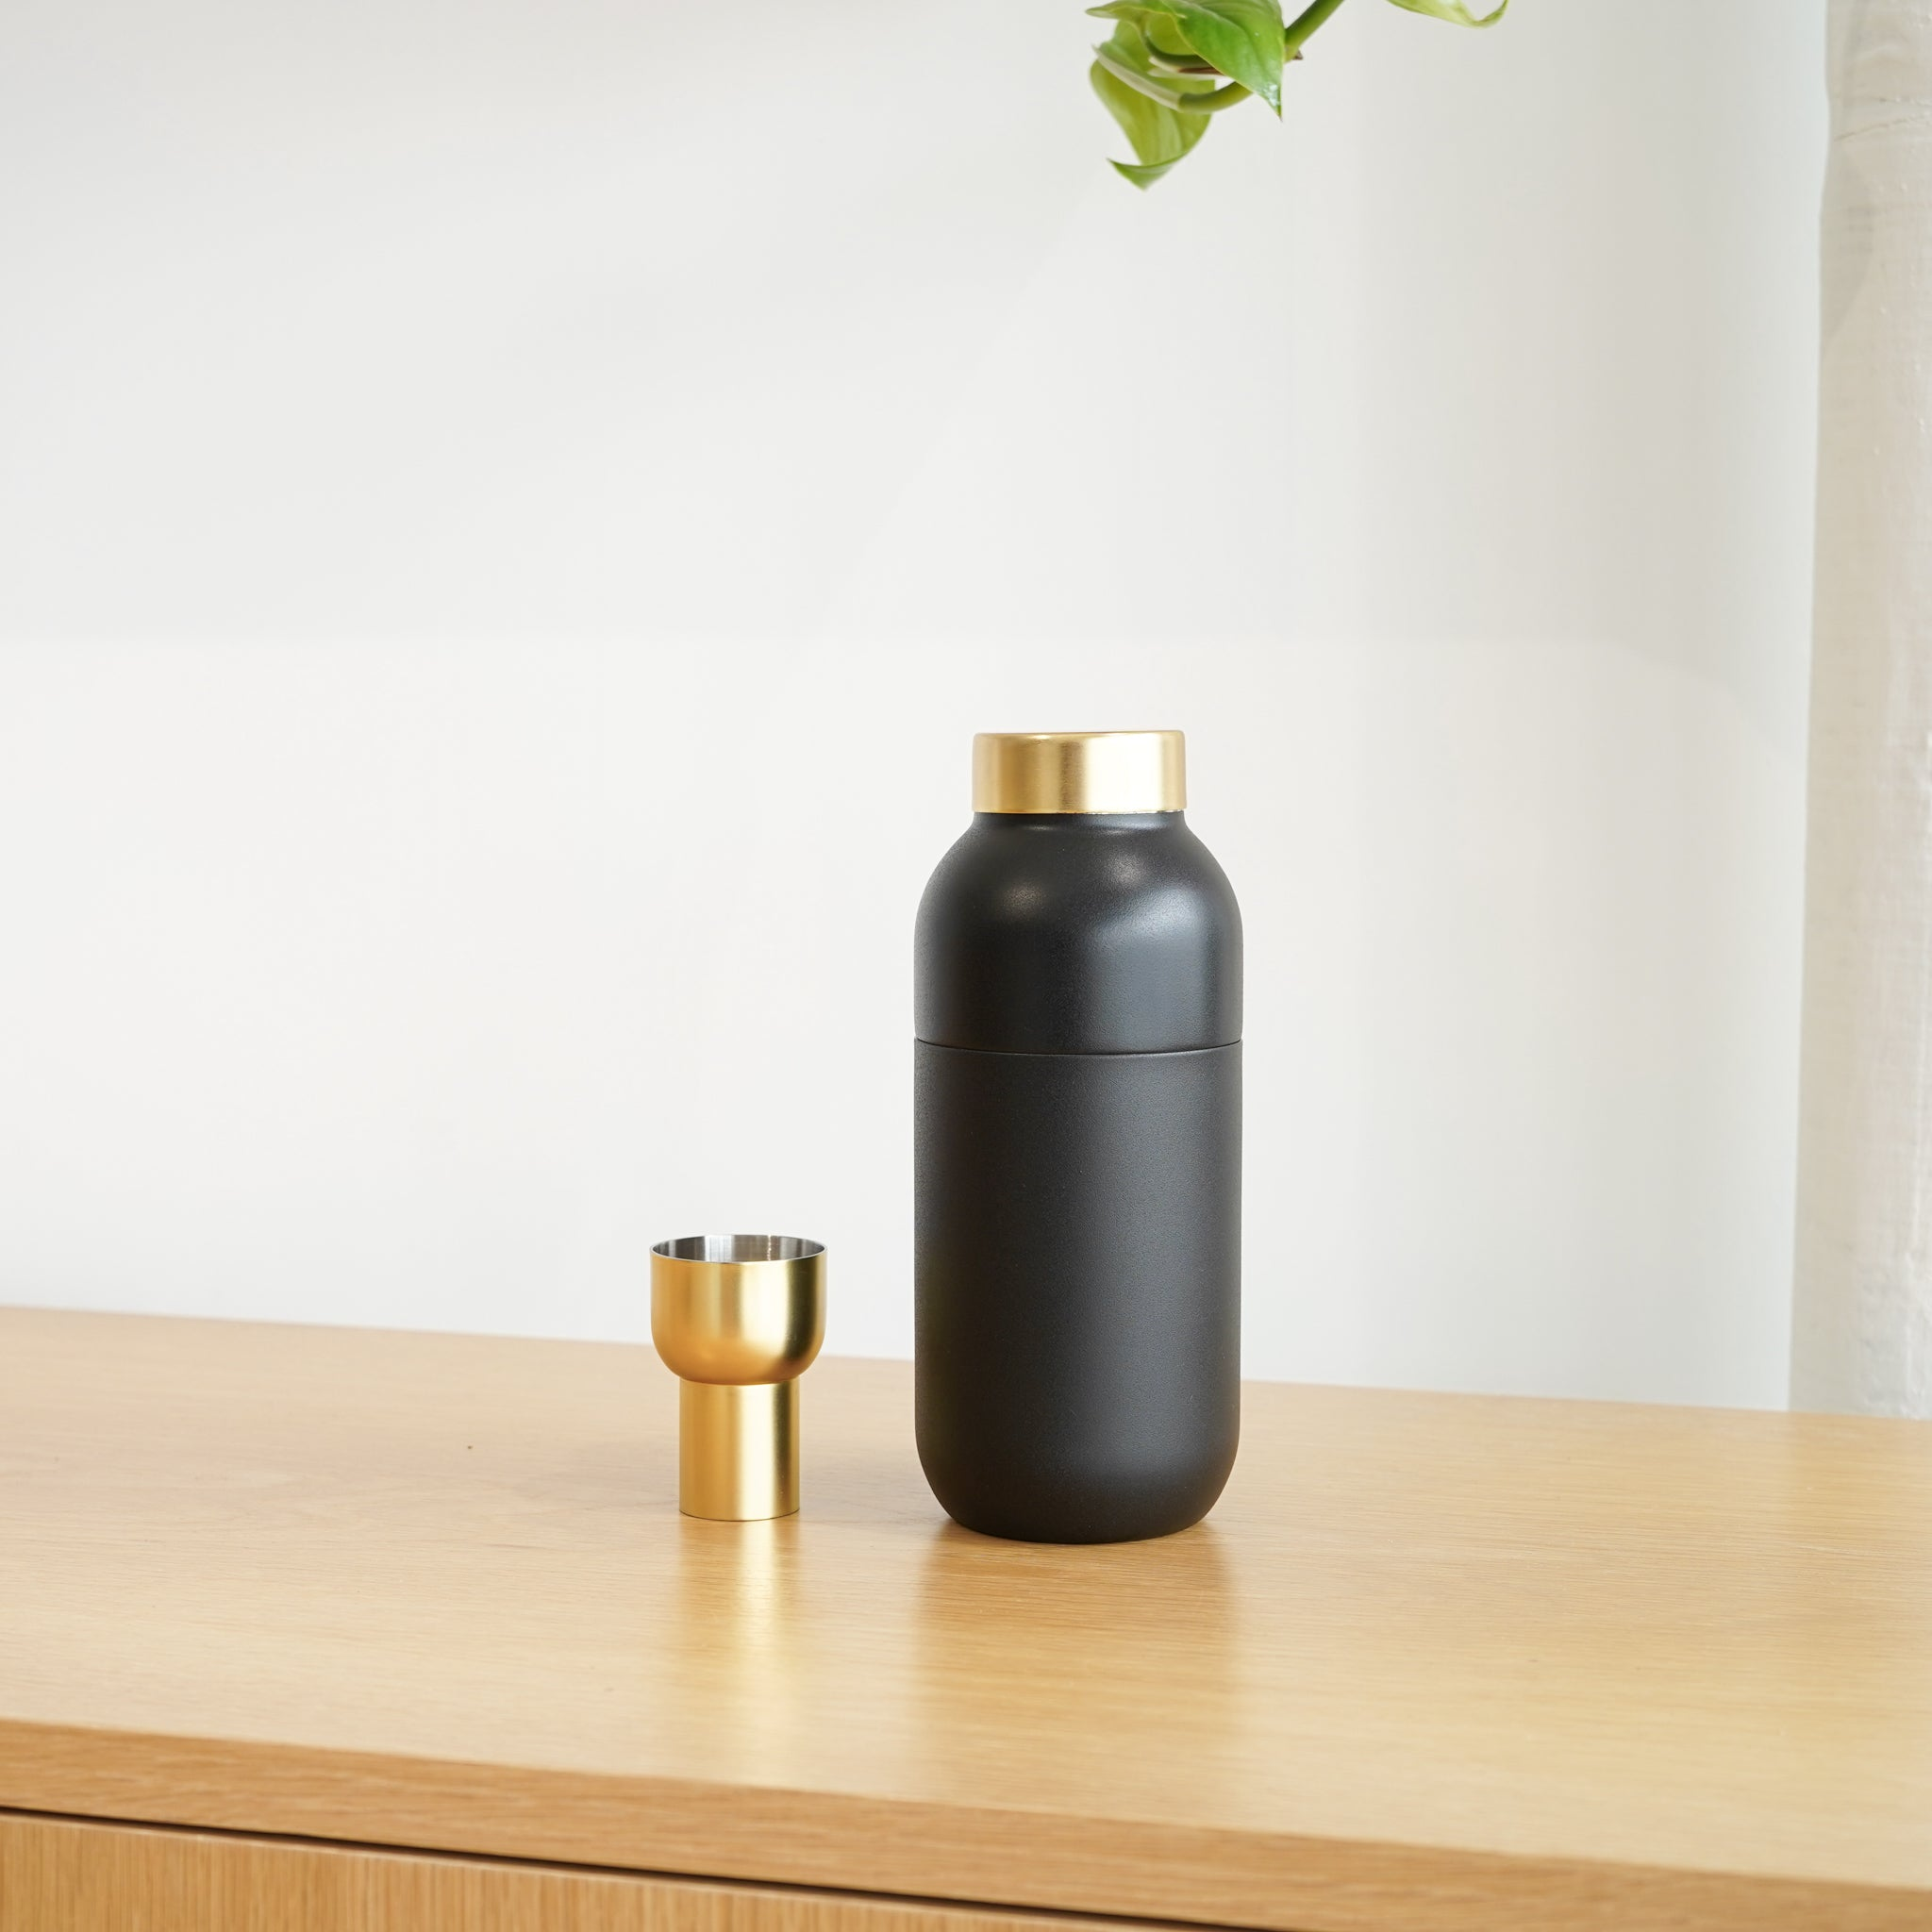 The The Collar Cocktail Shaker was designed by Daniel Debiasi & Federico Sandri for Danish design brand Stelton.